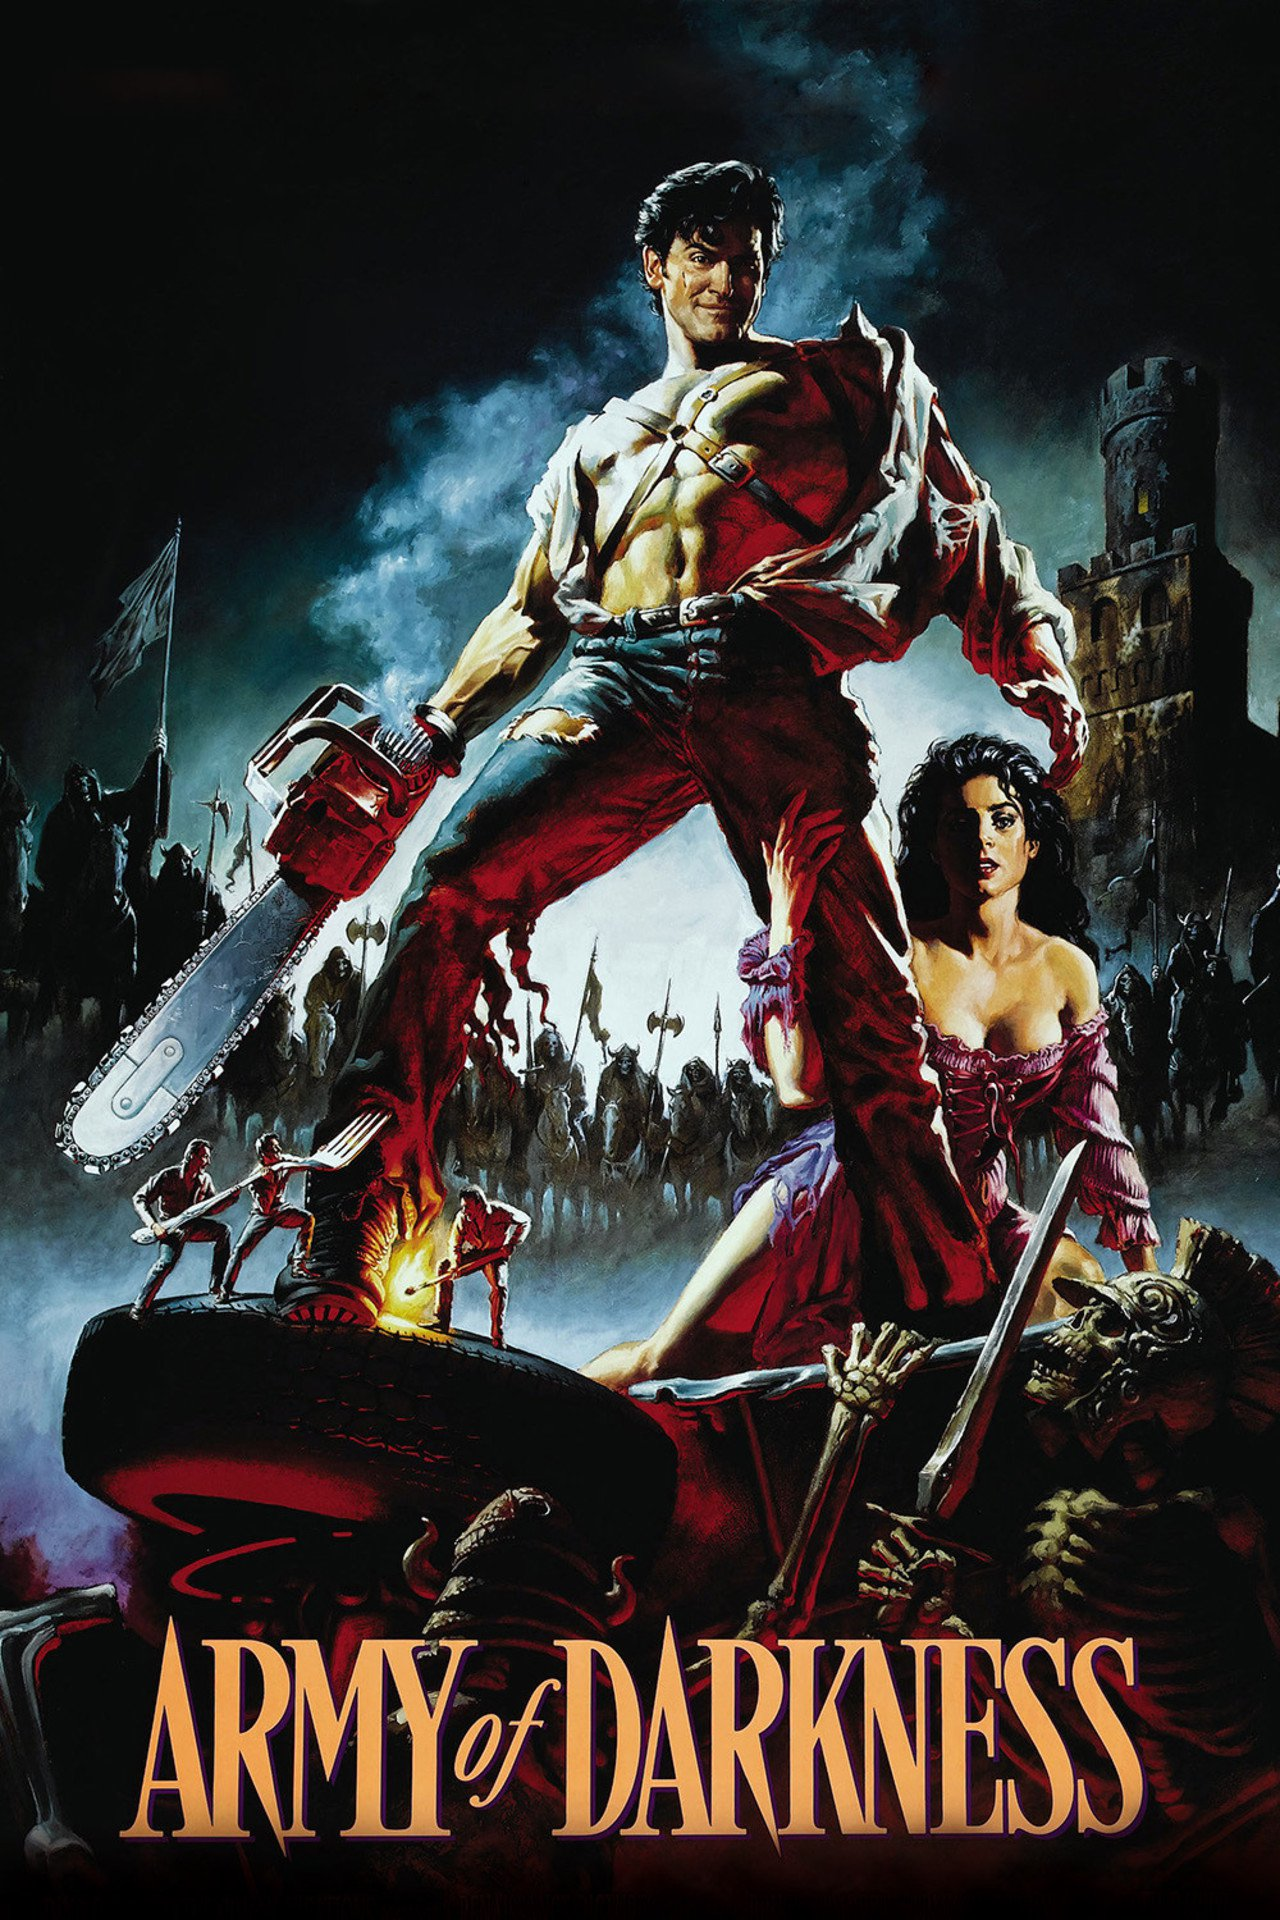 Poster for Army of Darkness